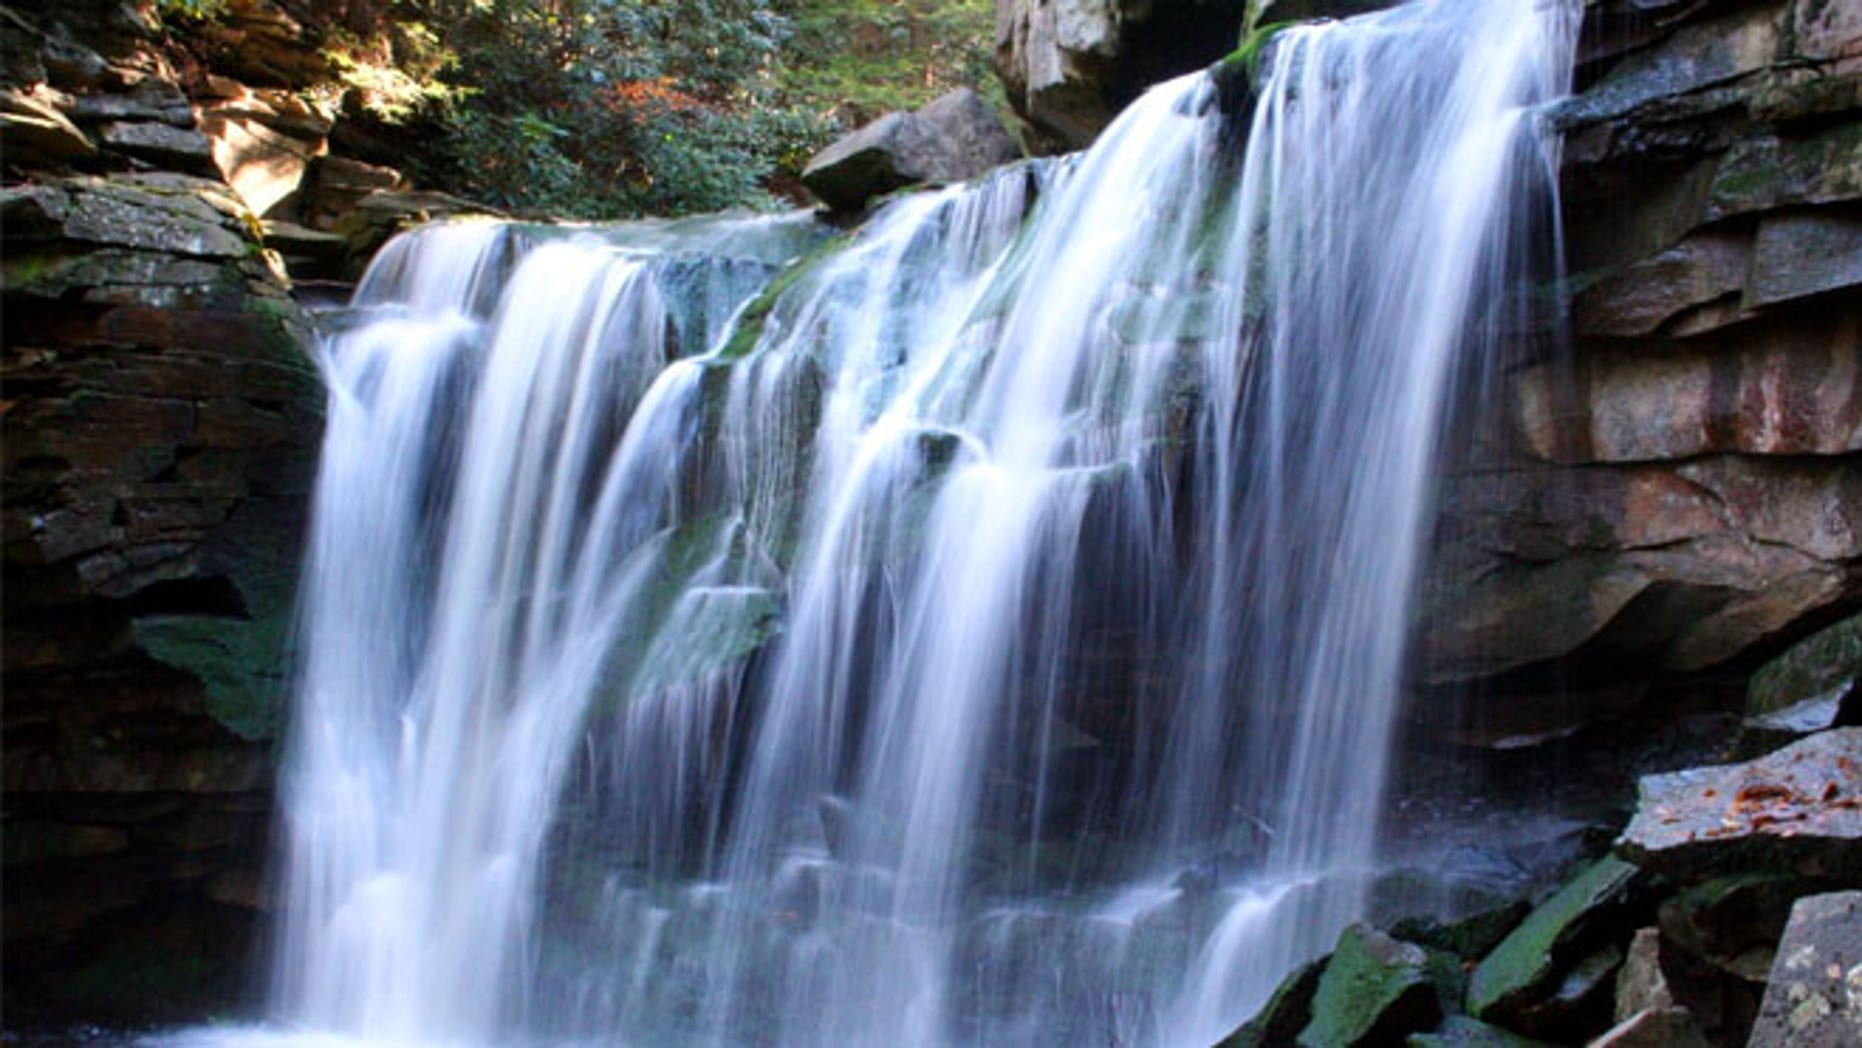 The fragile eco-system of Blackwater Falls State Park, named for the falls of the Blackwater River, is under threat from fracking.